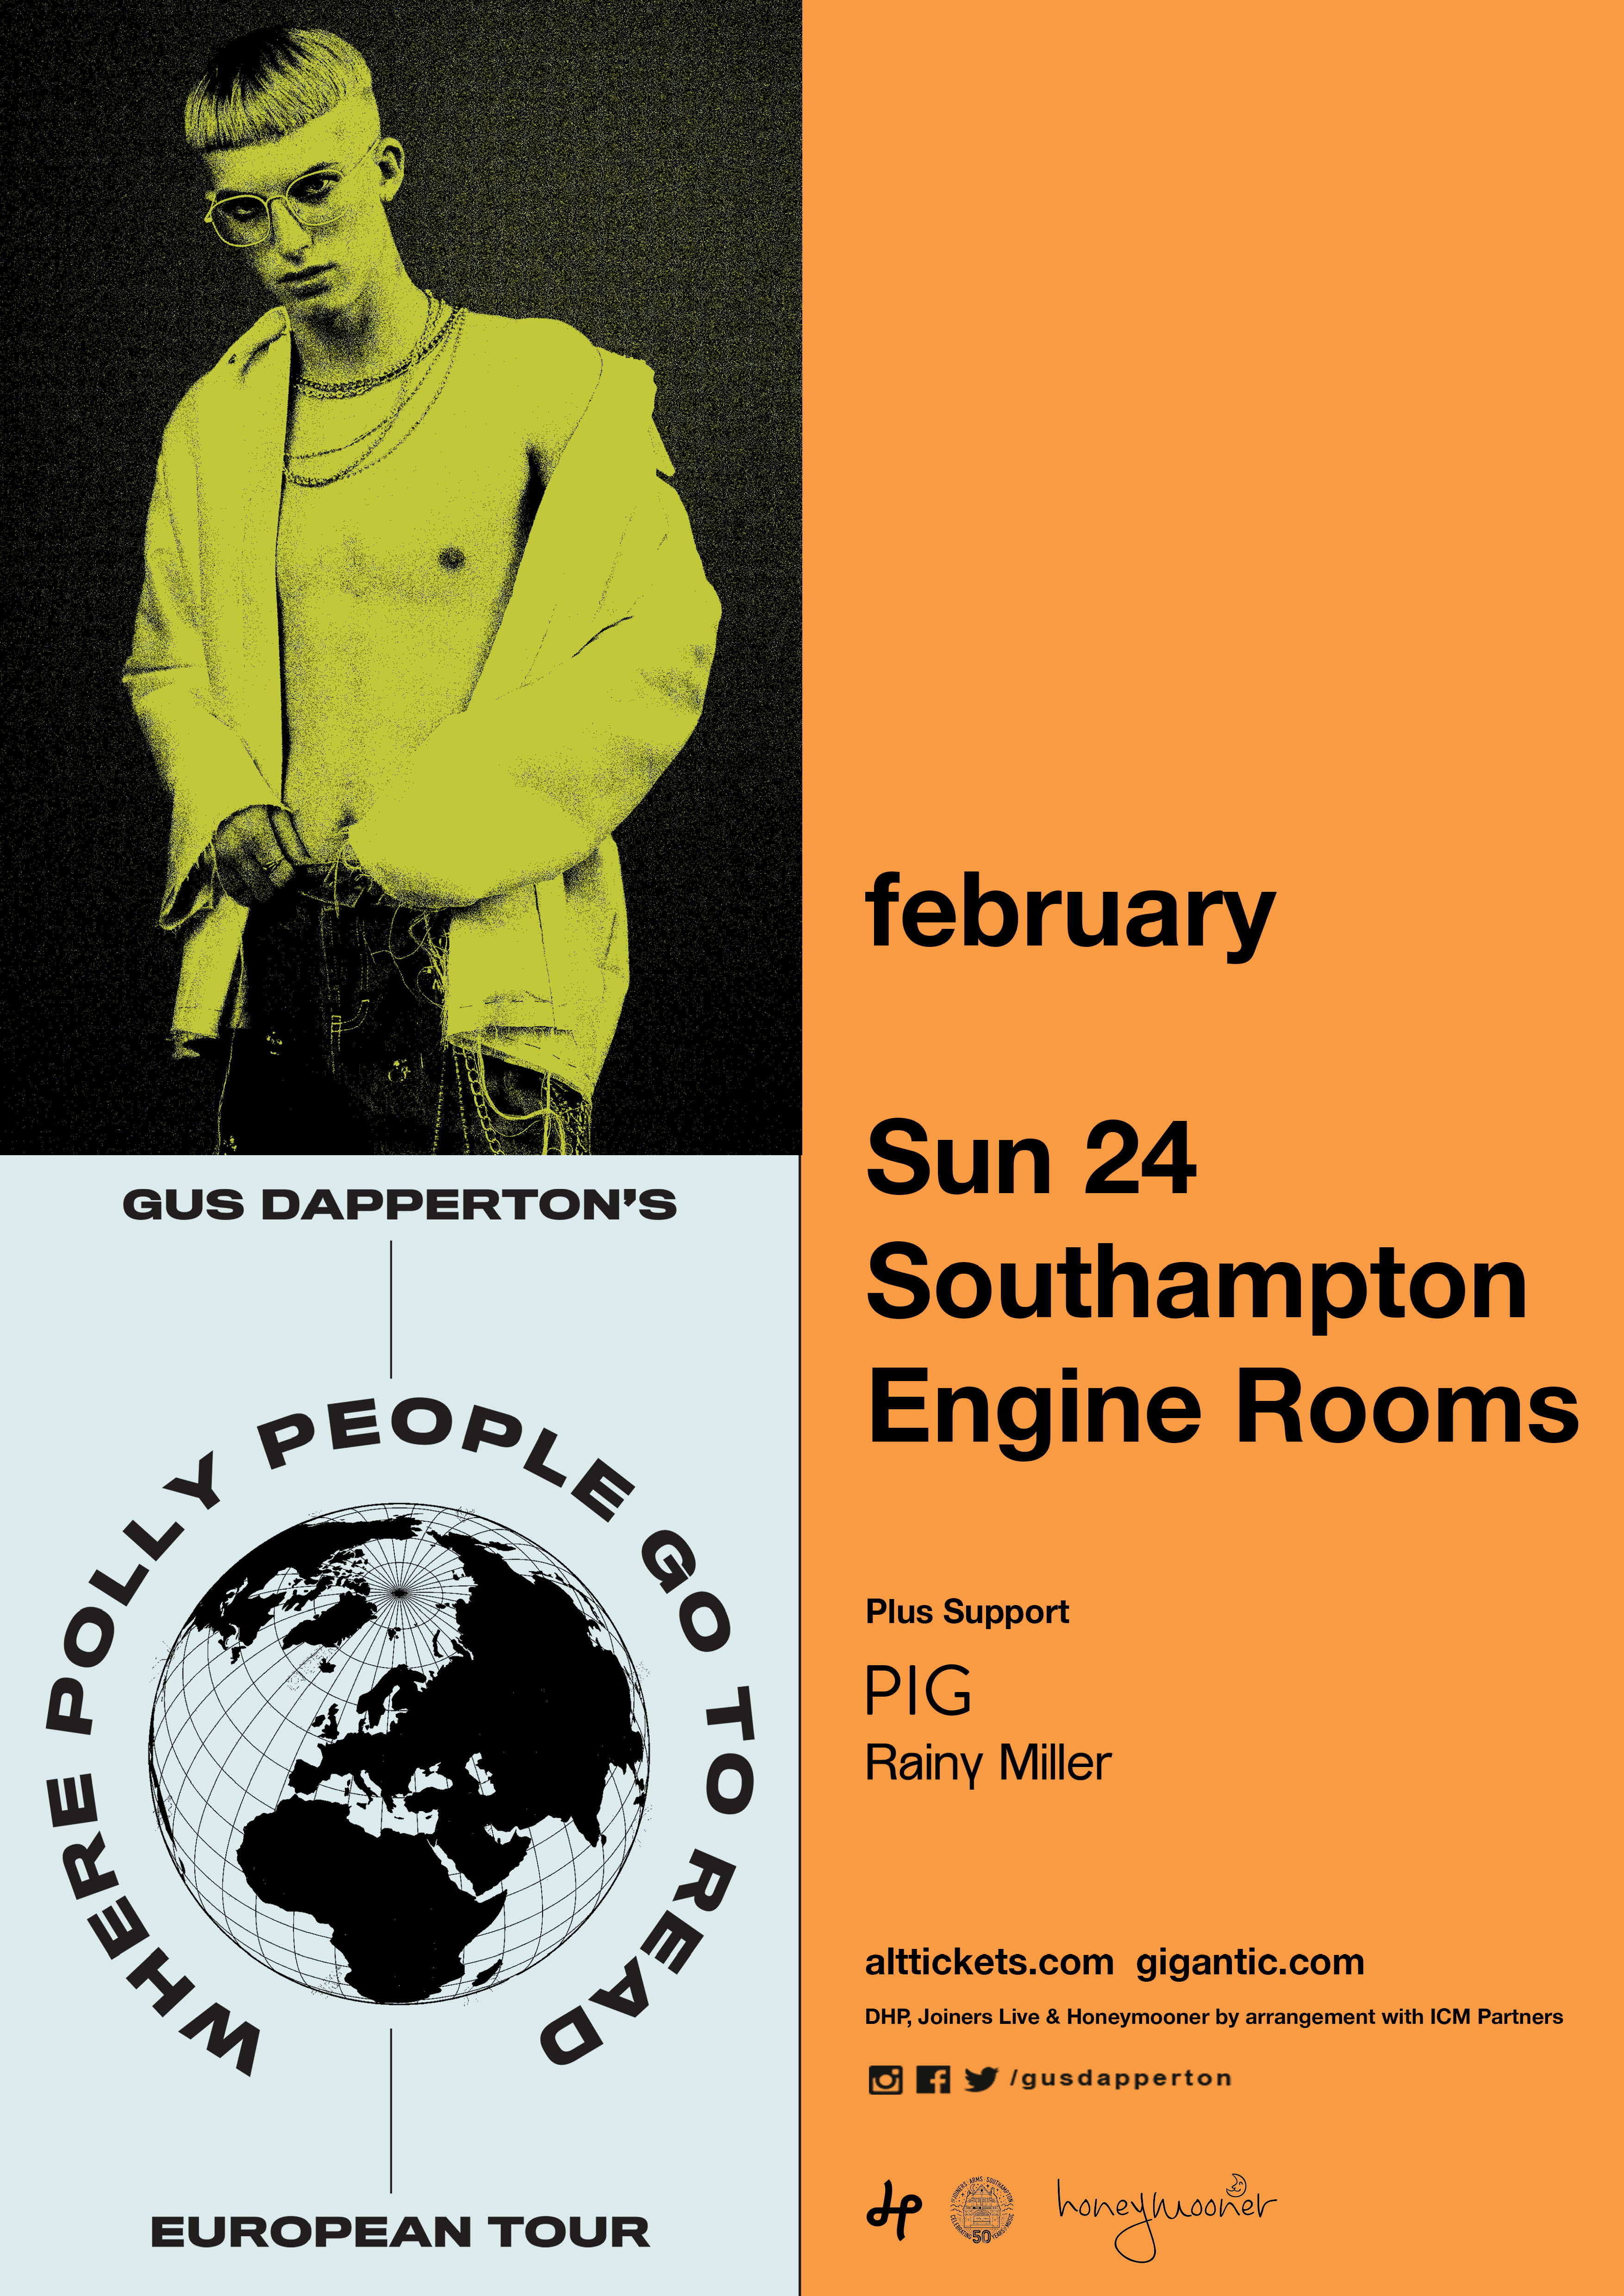 GUS DAPPERTON AT THE ENGINE ROOMS